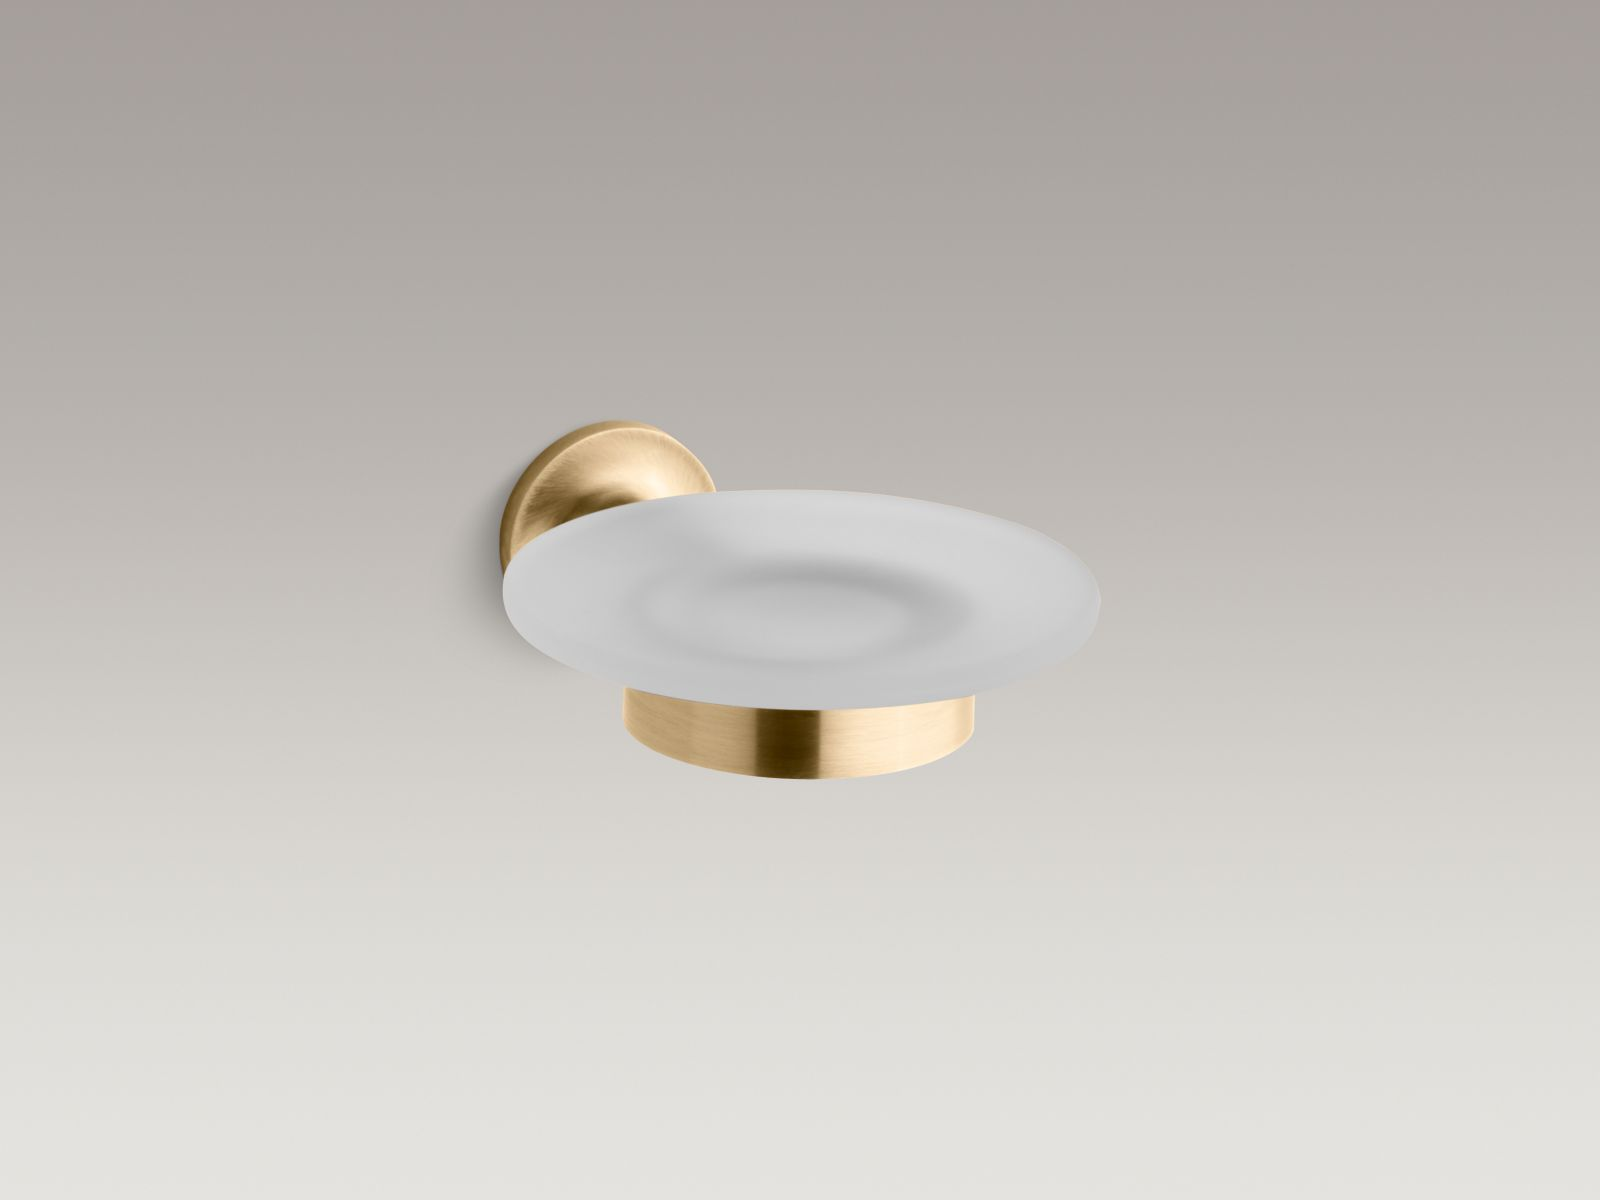 Kohler K-14445-BGD Purist Soap Dish Vibrant Moderne Brushed Gold